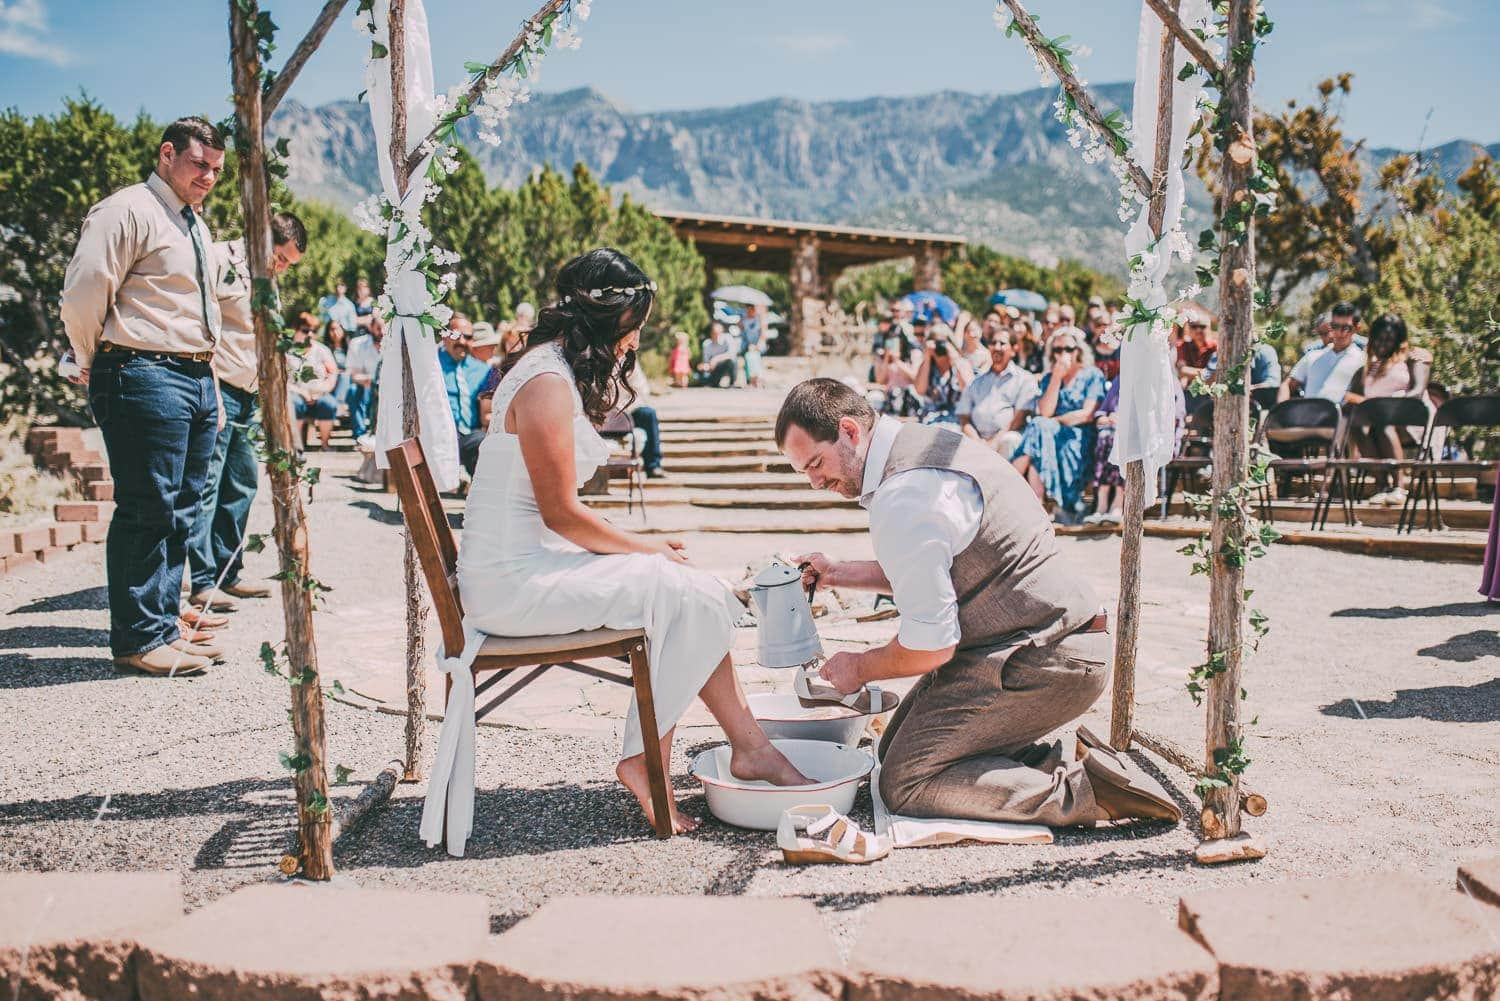 The groom is washing the brides feet. The mountains can be seen in the background.